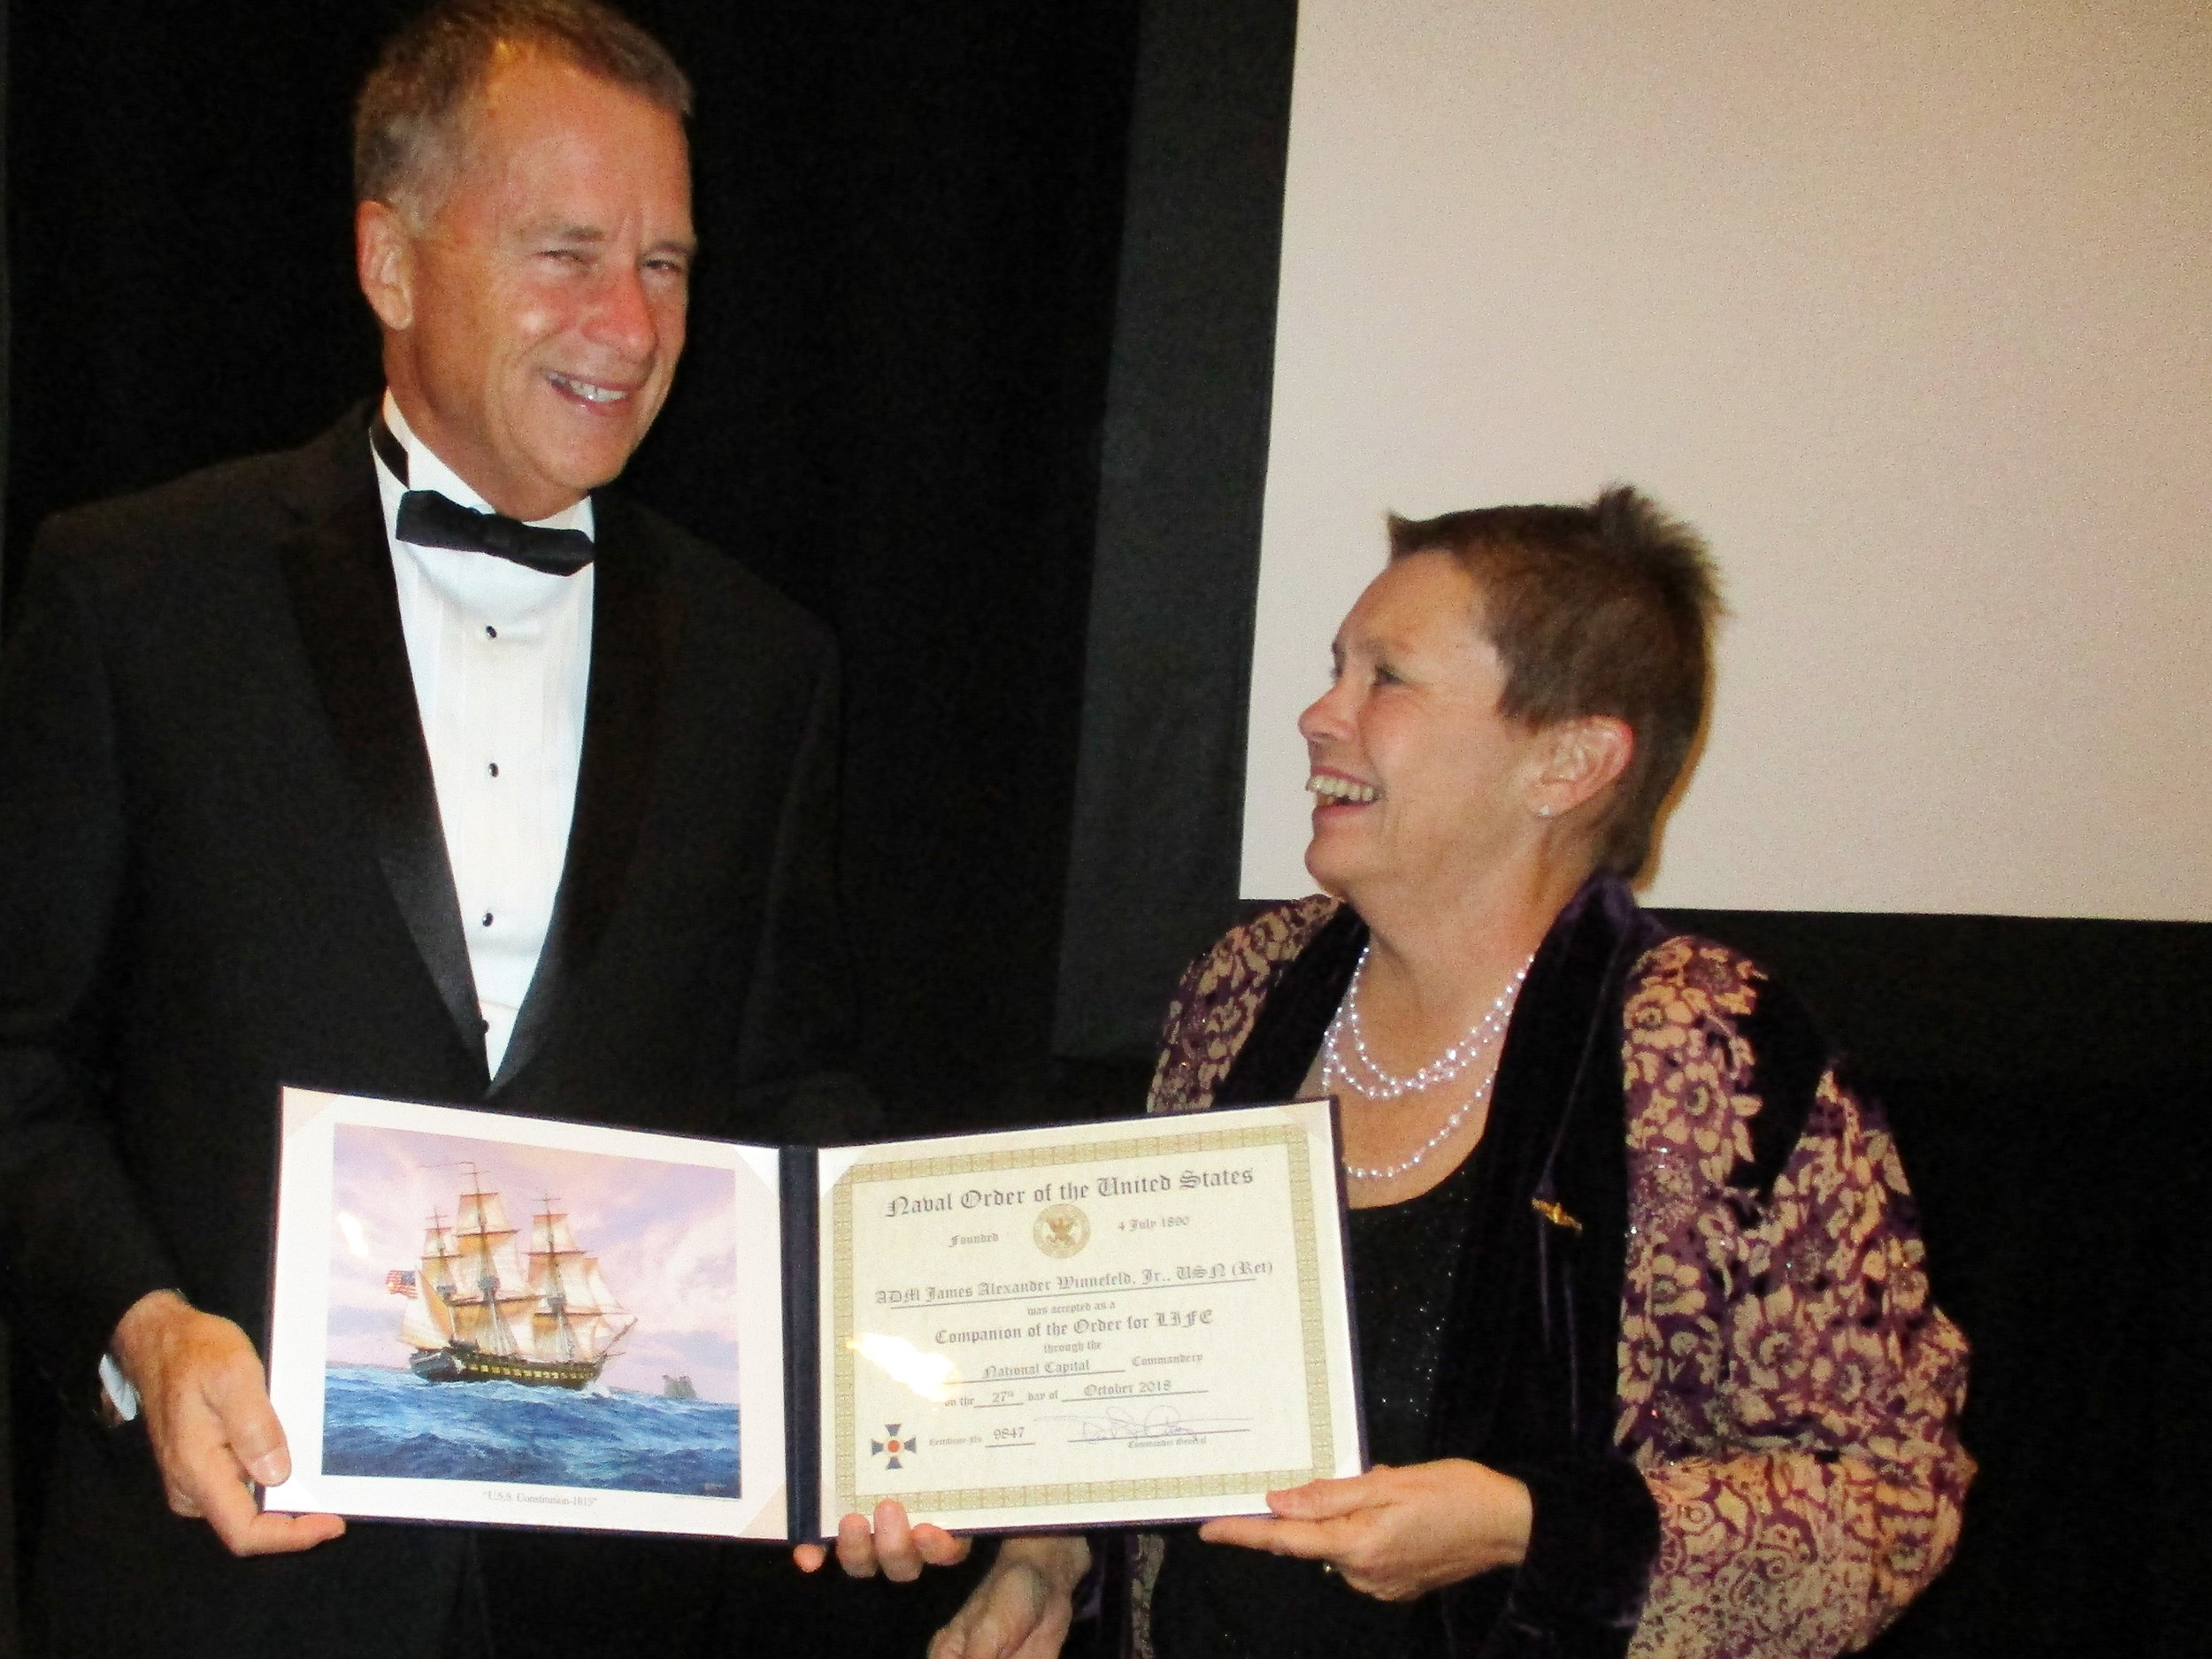 Recipient of the Distinguished Sea Service Award, ADM James A. Winnefeld, Jr., USN (Ret.), was also presented Life Membership in the Naval Order of the United States by CAPT Kris Carlock, USN (Ret.)